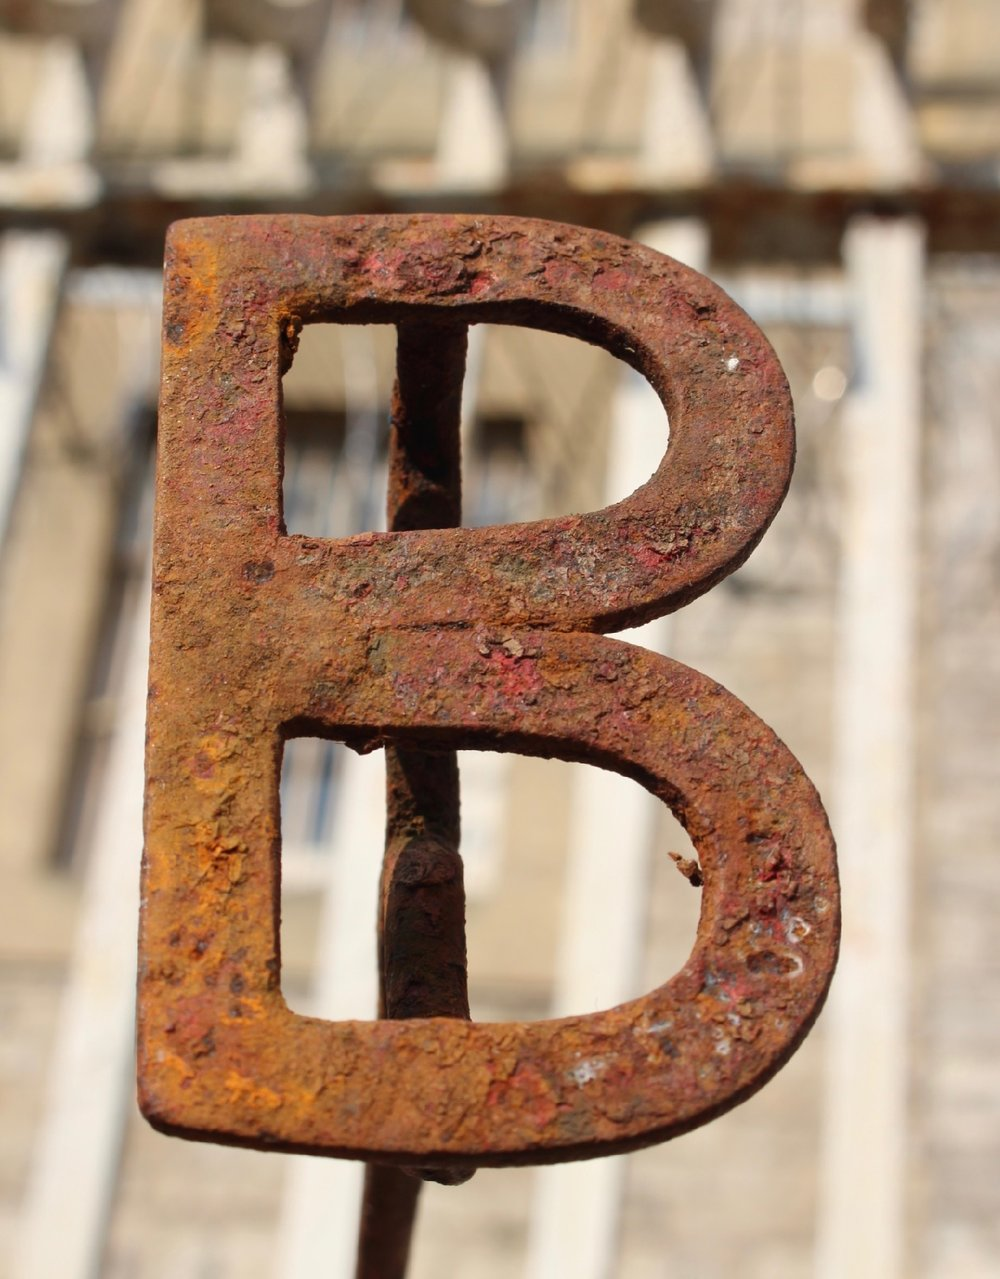 Branding iron found in my scrap collection, will be used for B-Wing branding.jpg